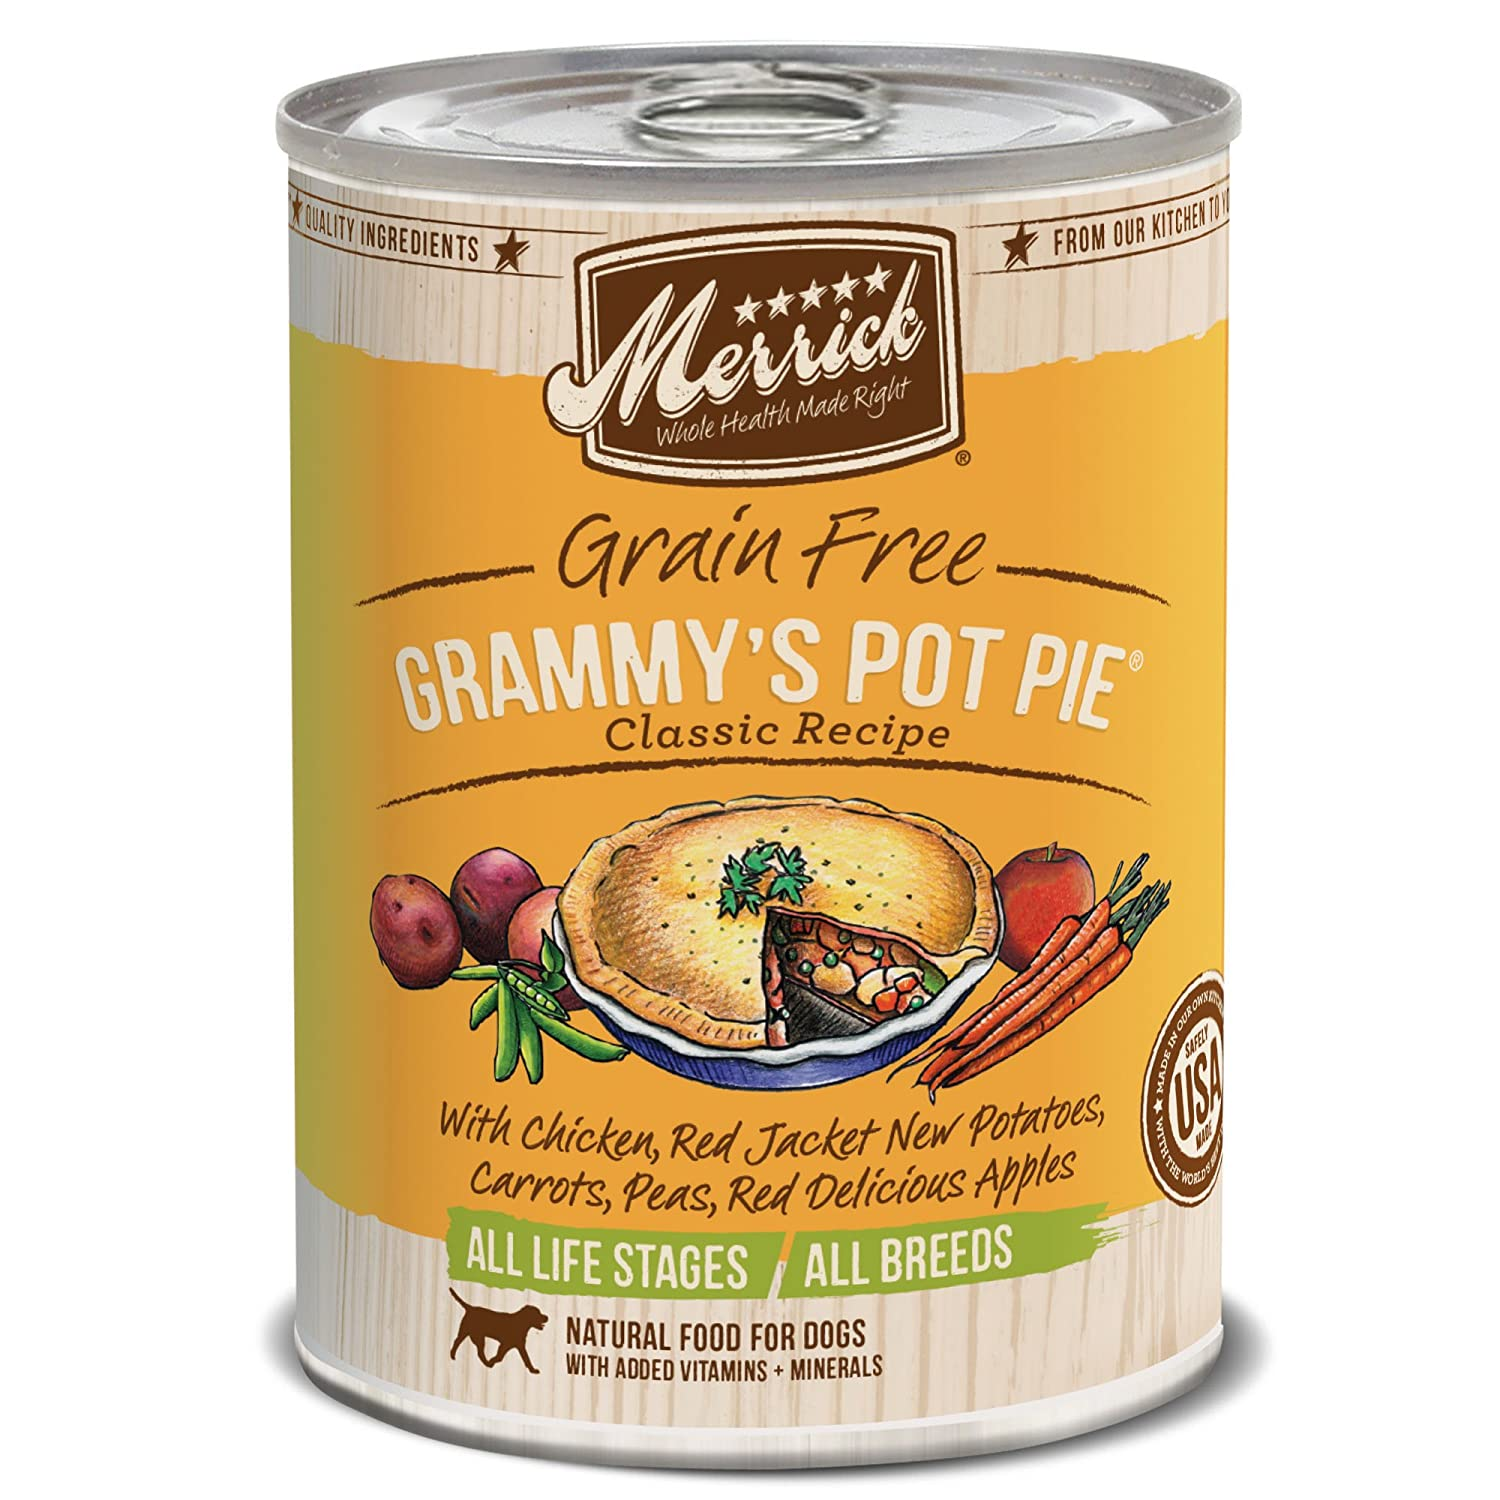 2.Merrick Grain-Free Grammy's Pot Pie Recipe Canned Dog Food